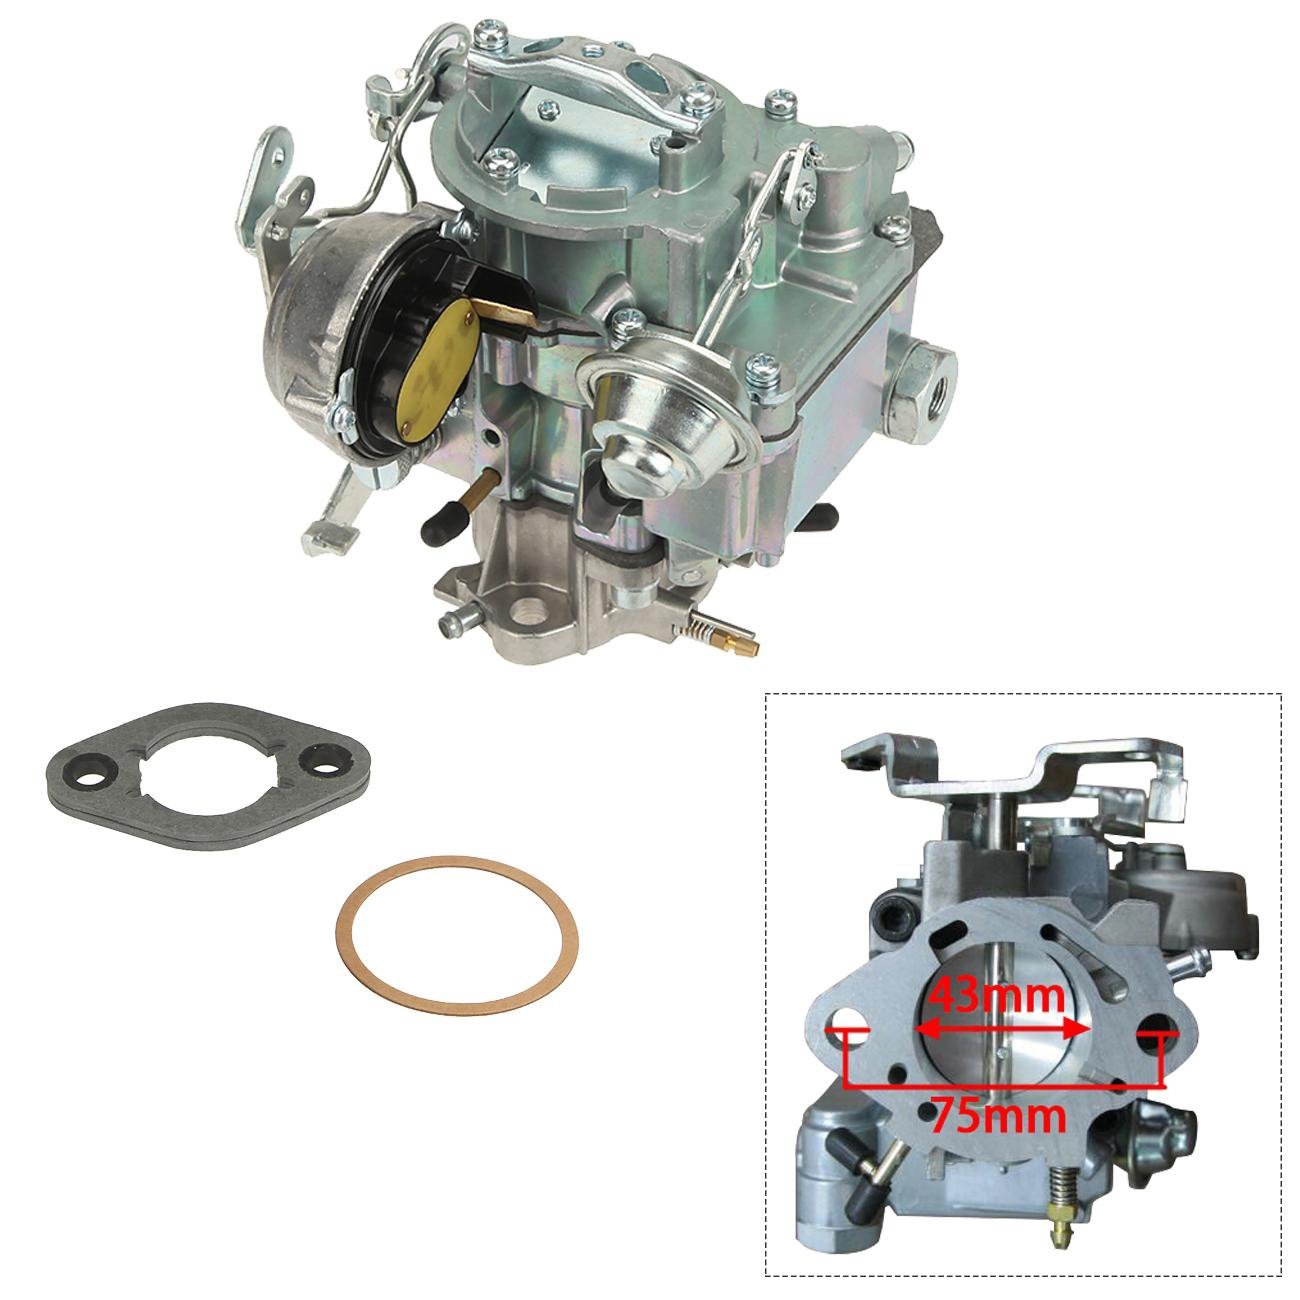 ALAVENTE Carburetor Carb for Dodge Plymouth Models & Dodge Truck 1966-1973 with 273-318 Engine(Manual Choke)